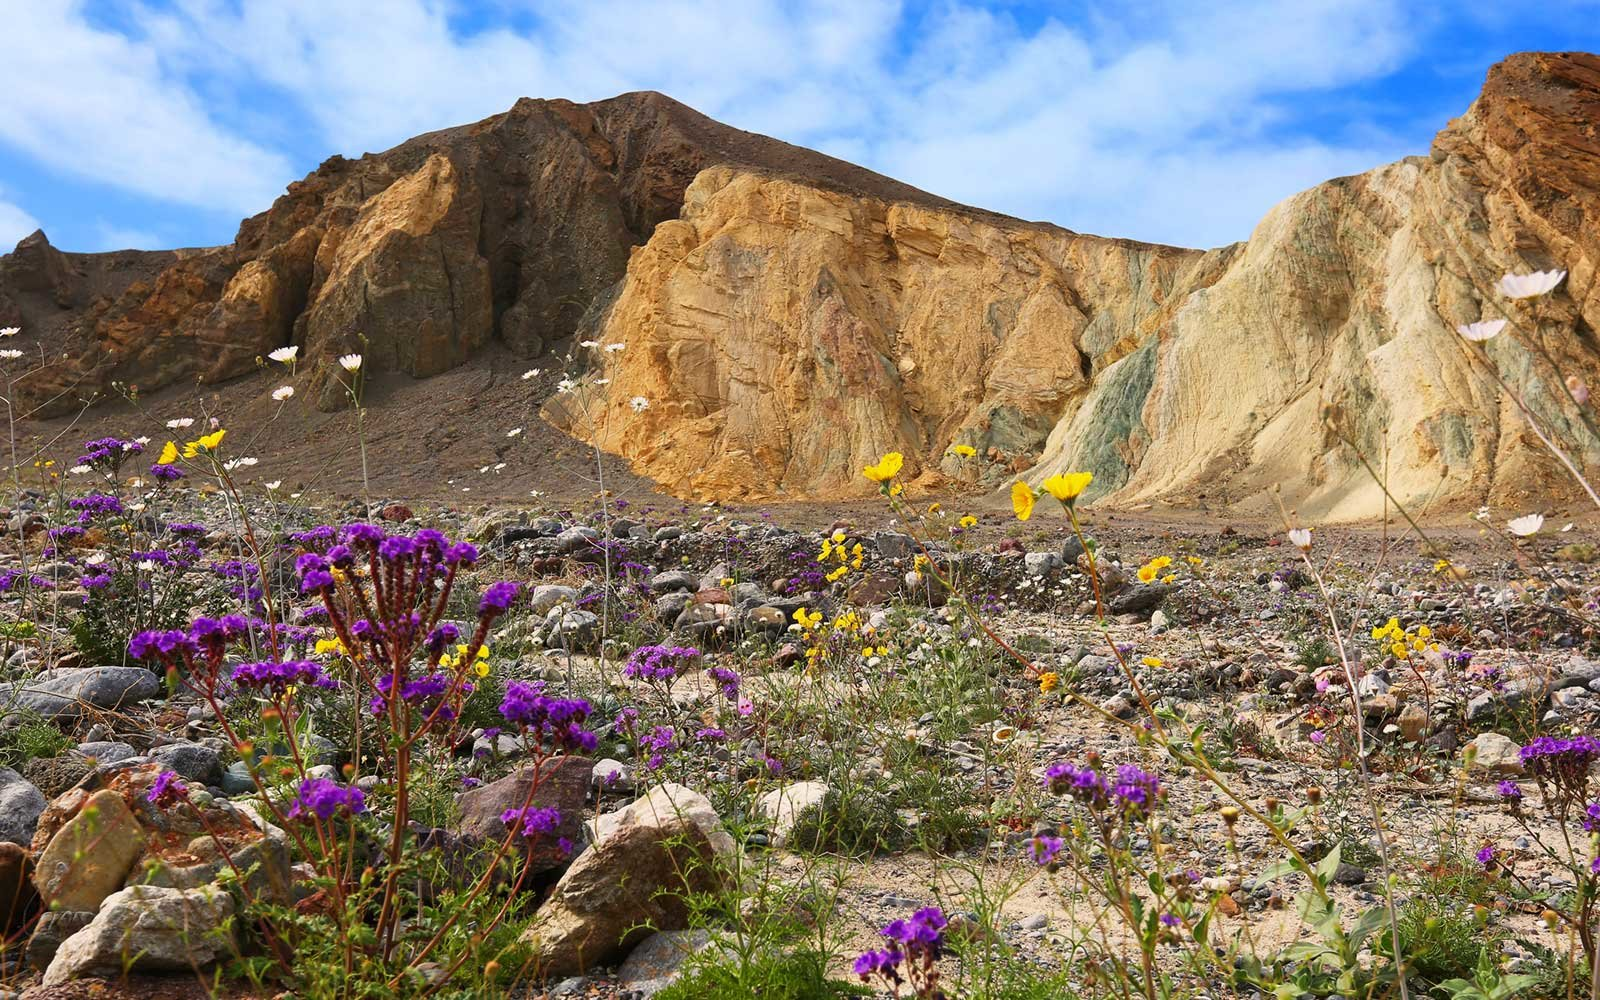 Wildflowers, Riverbed, Super Bloom, Spring 2016, Death Valley National Park, February 2016